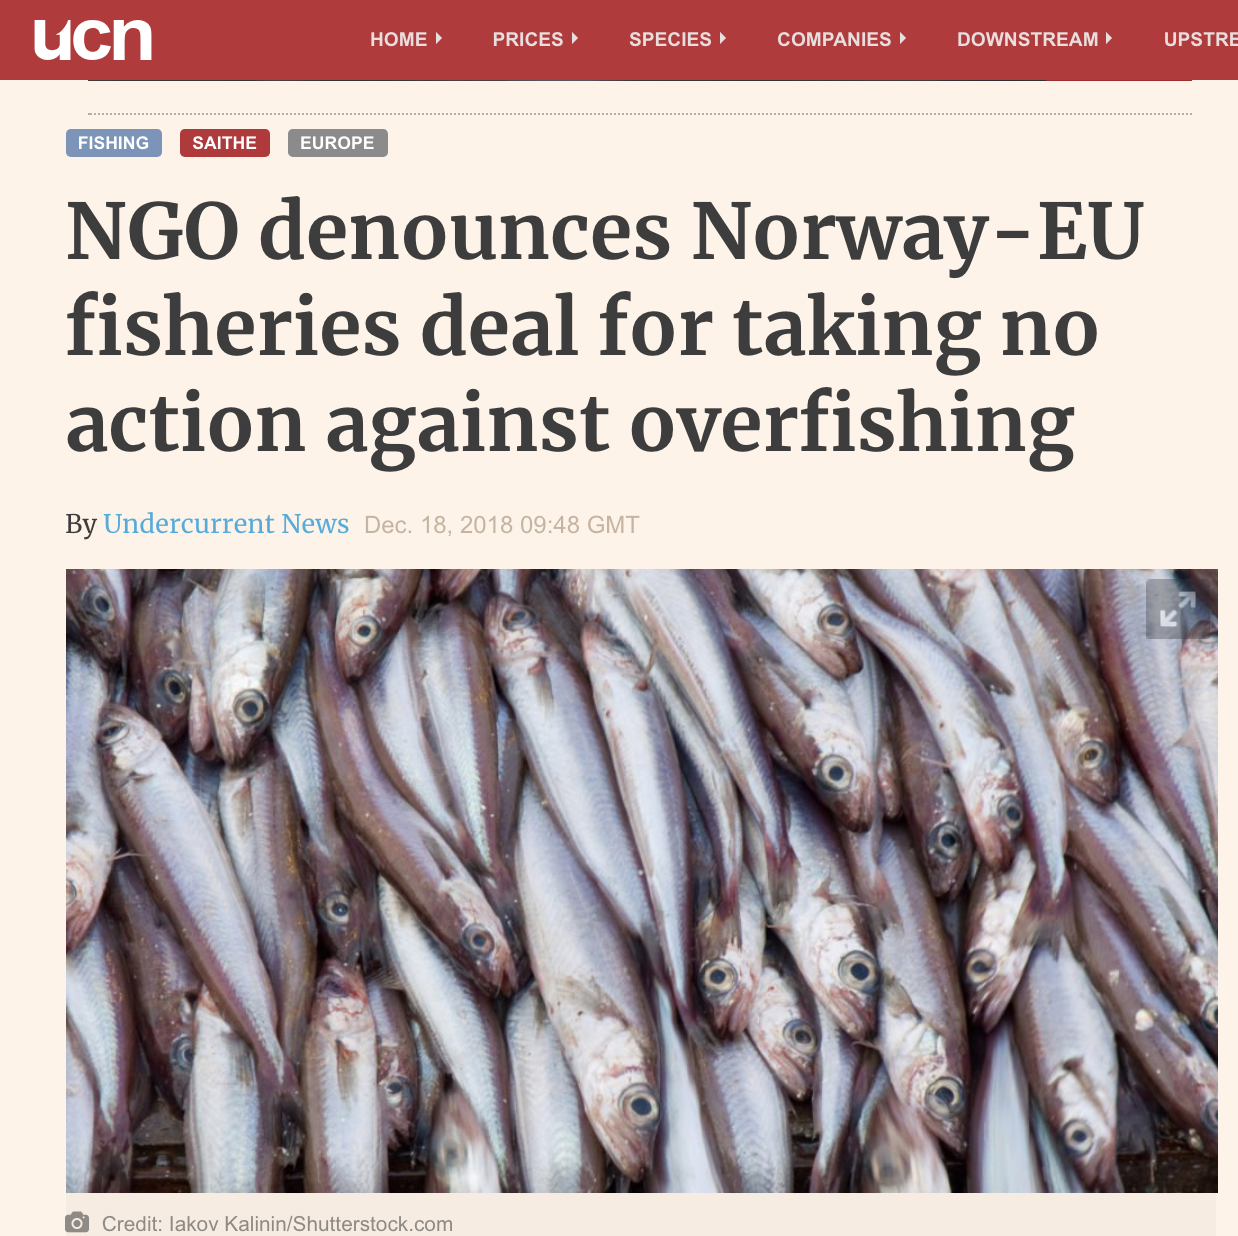 NGO denounces Norway-EU fisheries deal for taking no action against overfishing